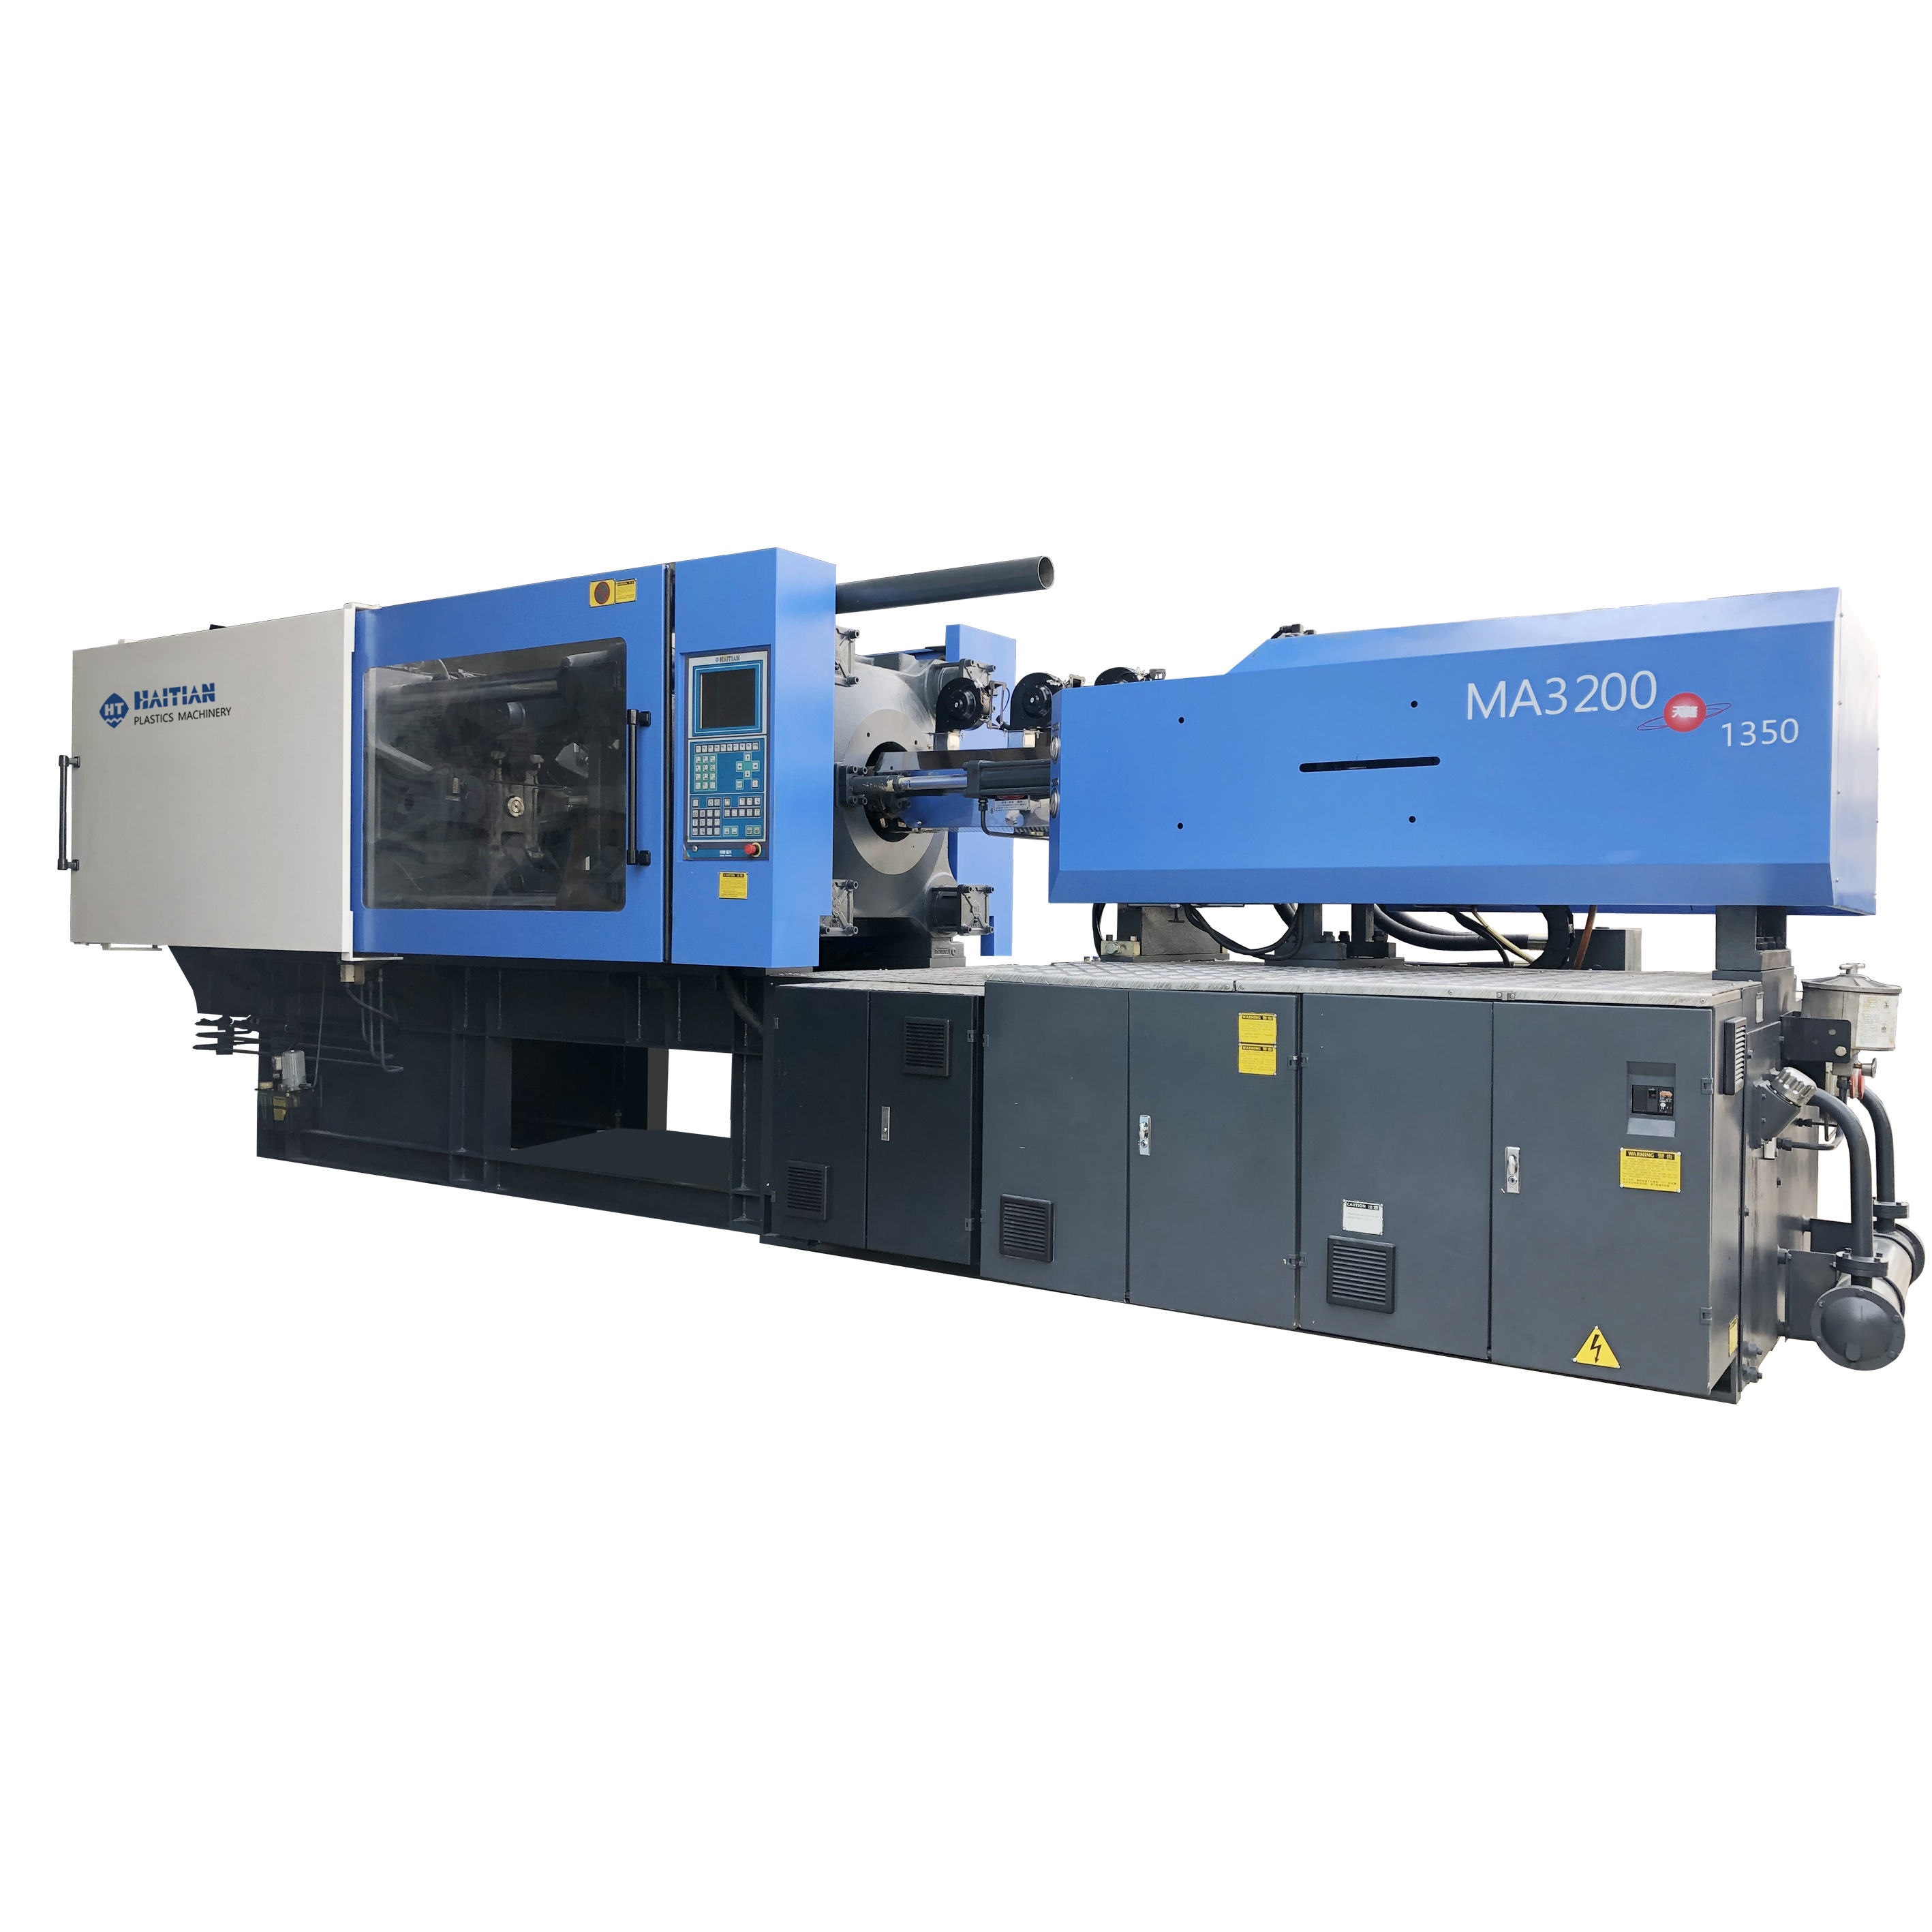 Used 320TONS HAITIAN MA3200 plastic injection molding machine